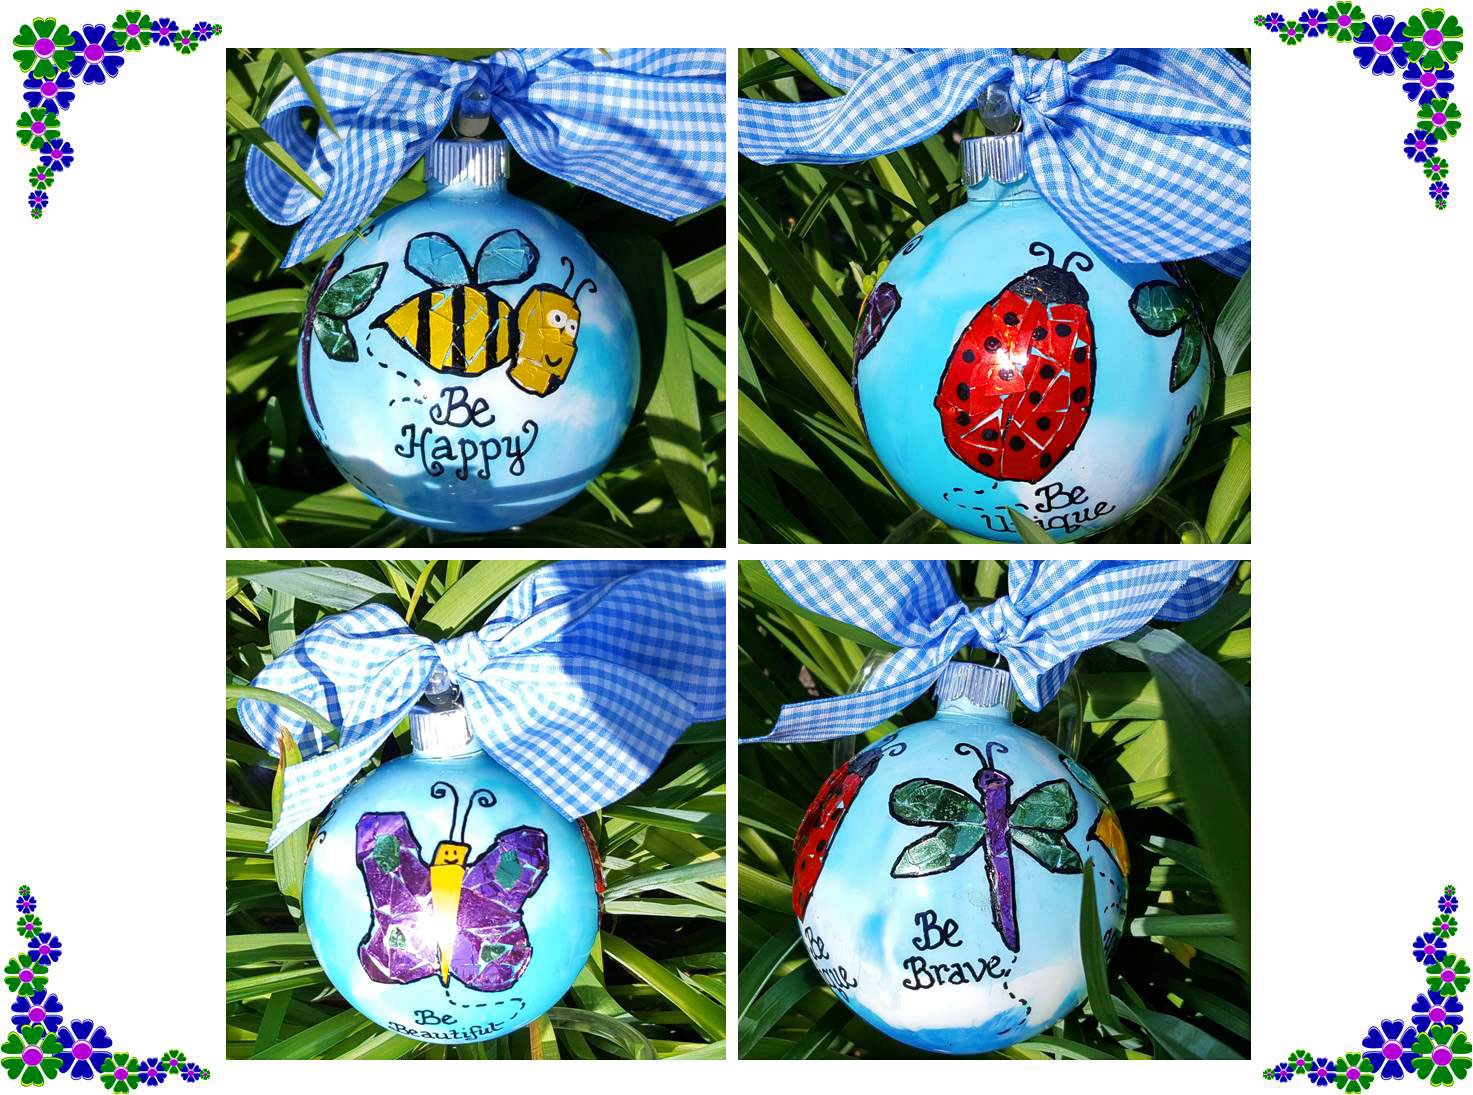 One DIY ornament displayed in 4 pictures to show each mosaic bug | OrnamentShop.com